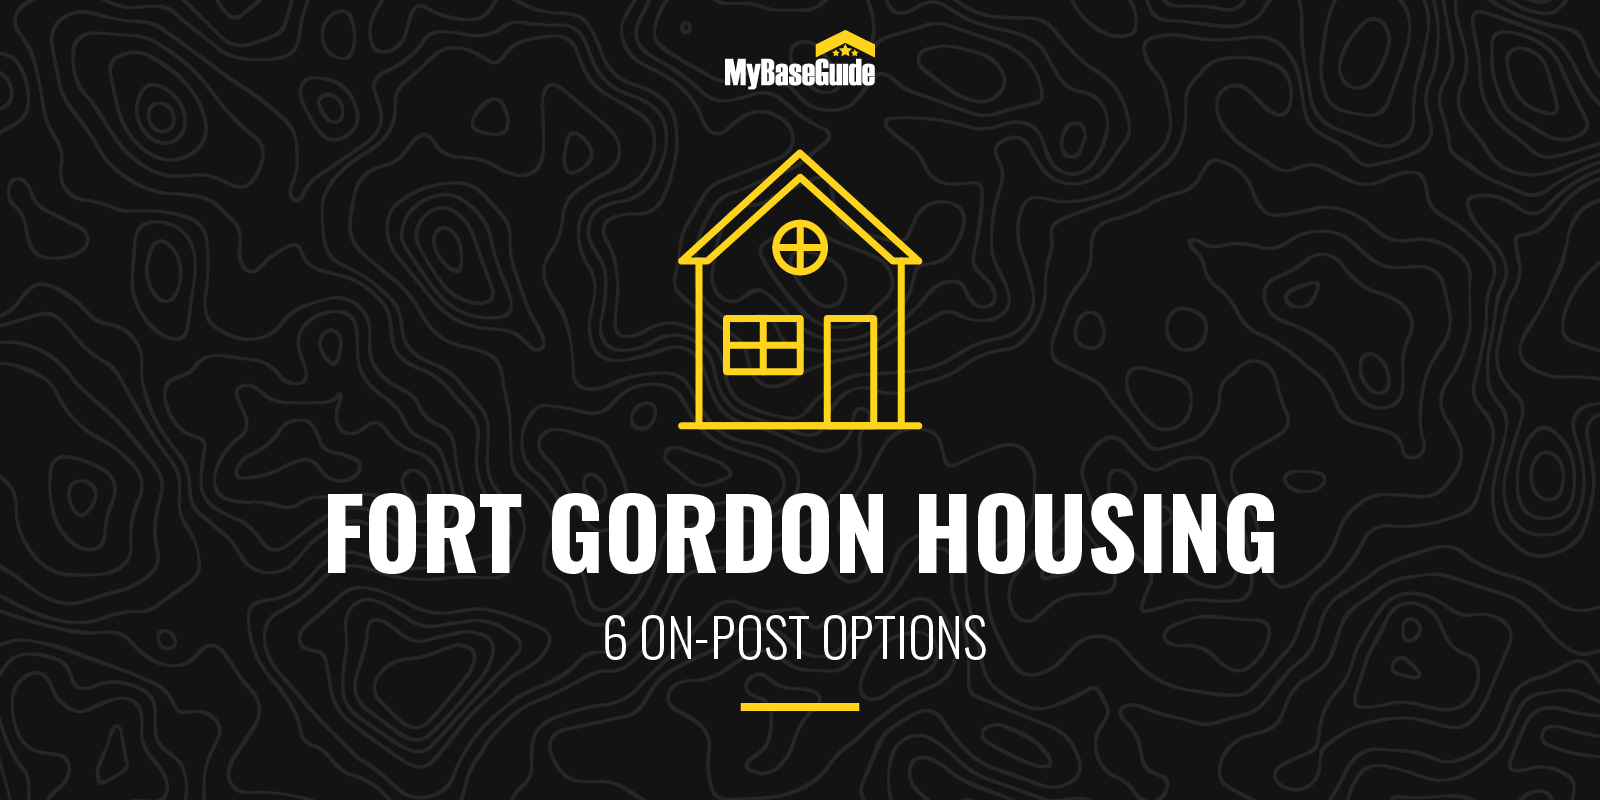 Fort Gordon Housing Options